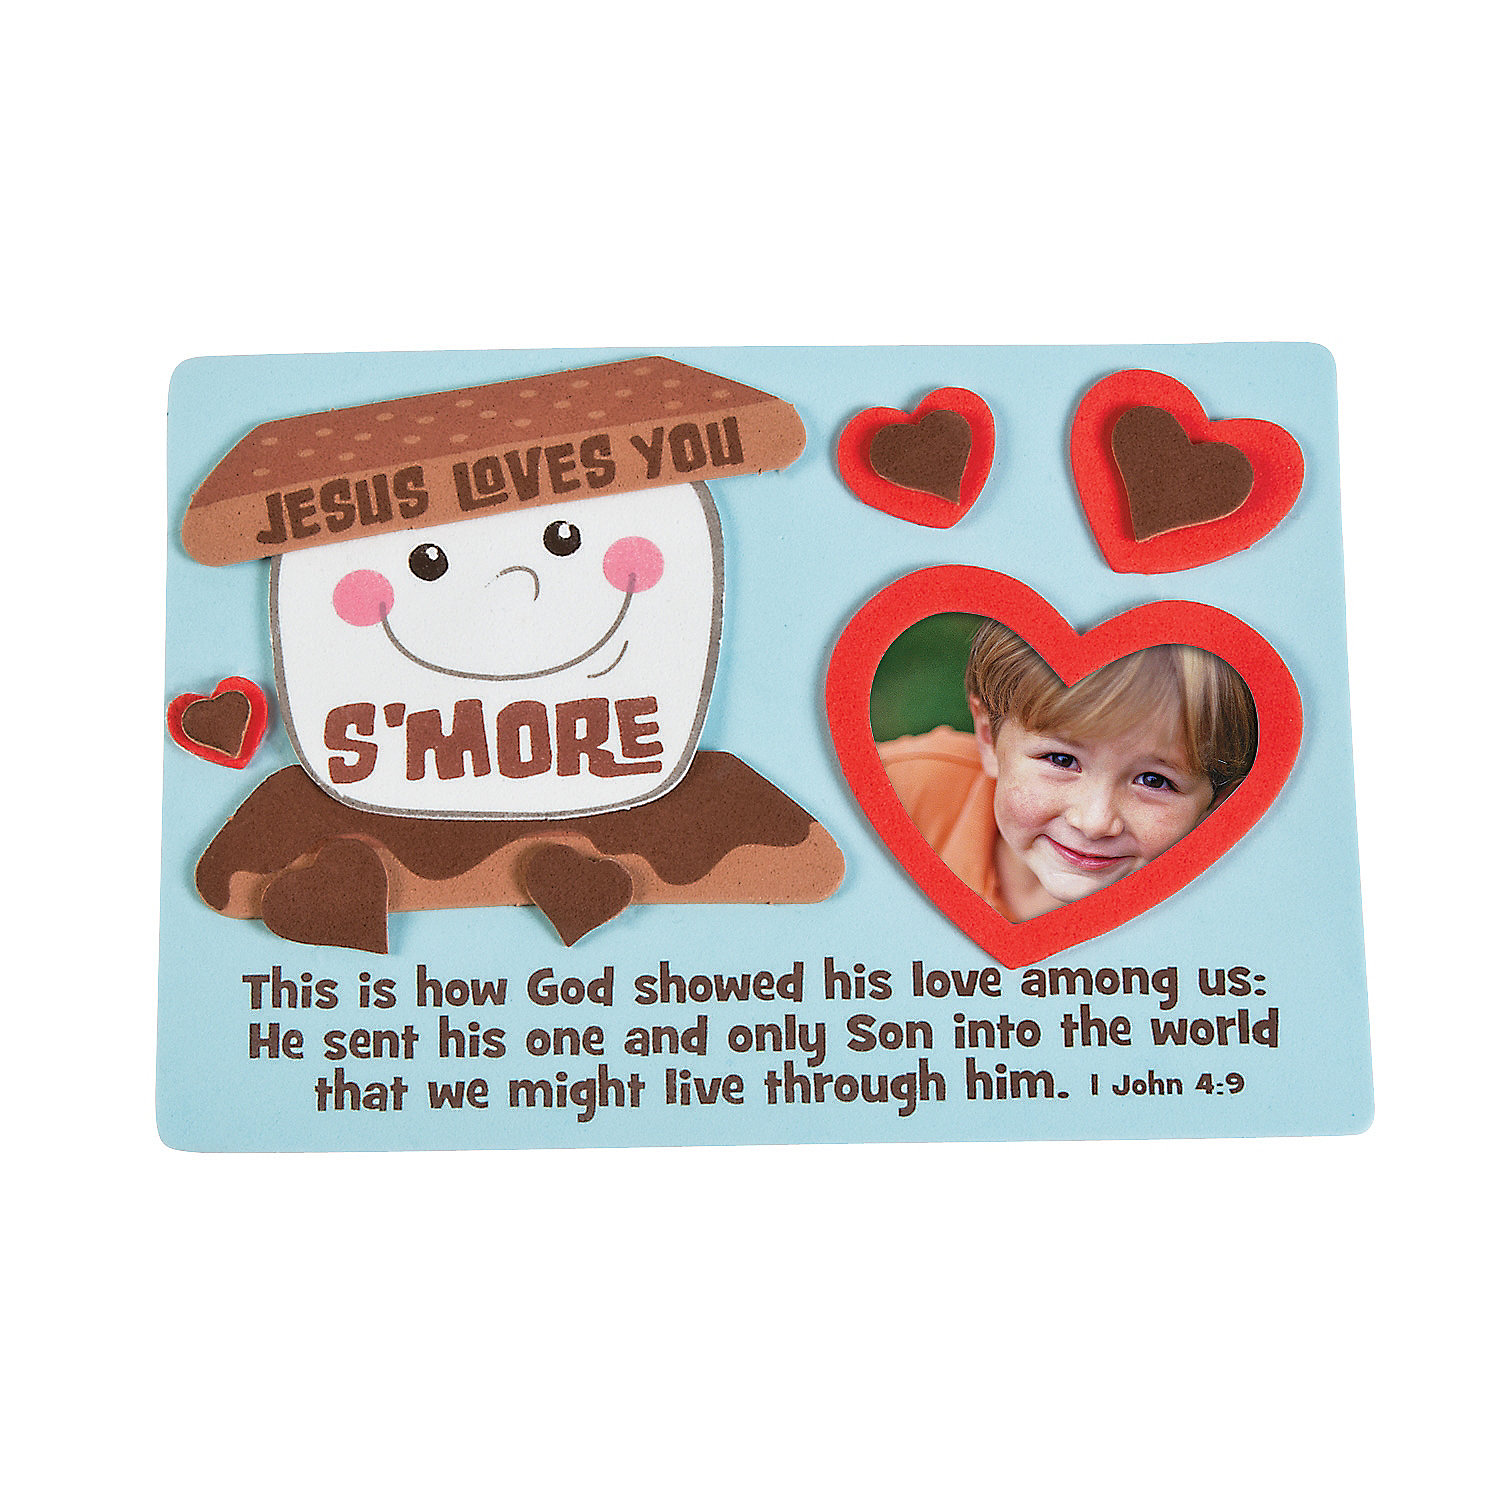 Jesus Loves You Sand More Picture Frame Magnet Craft Kit A2 13673938 on 25 Earth Day Activities For Kids